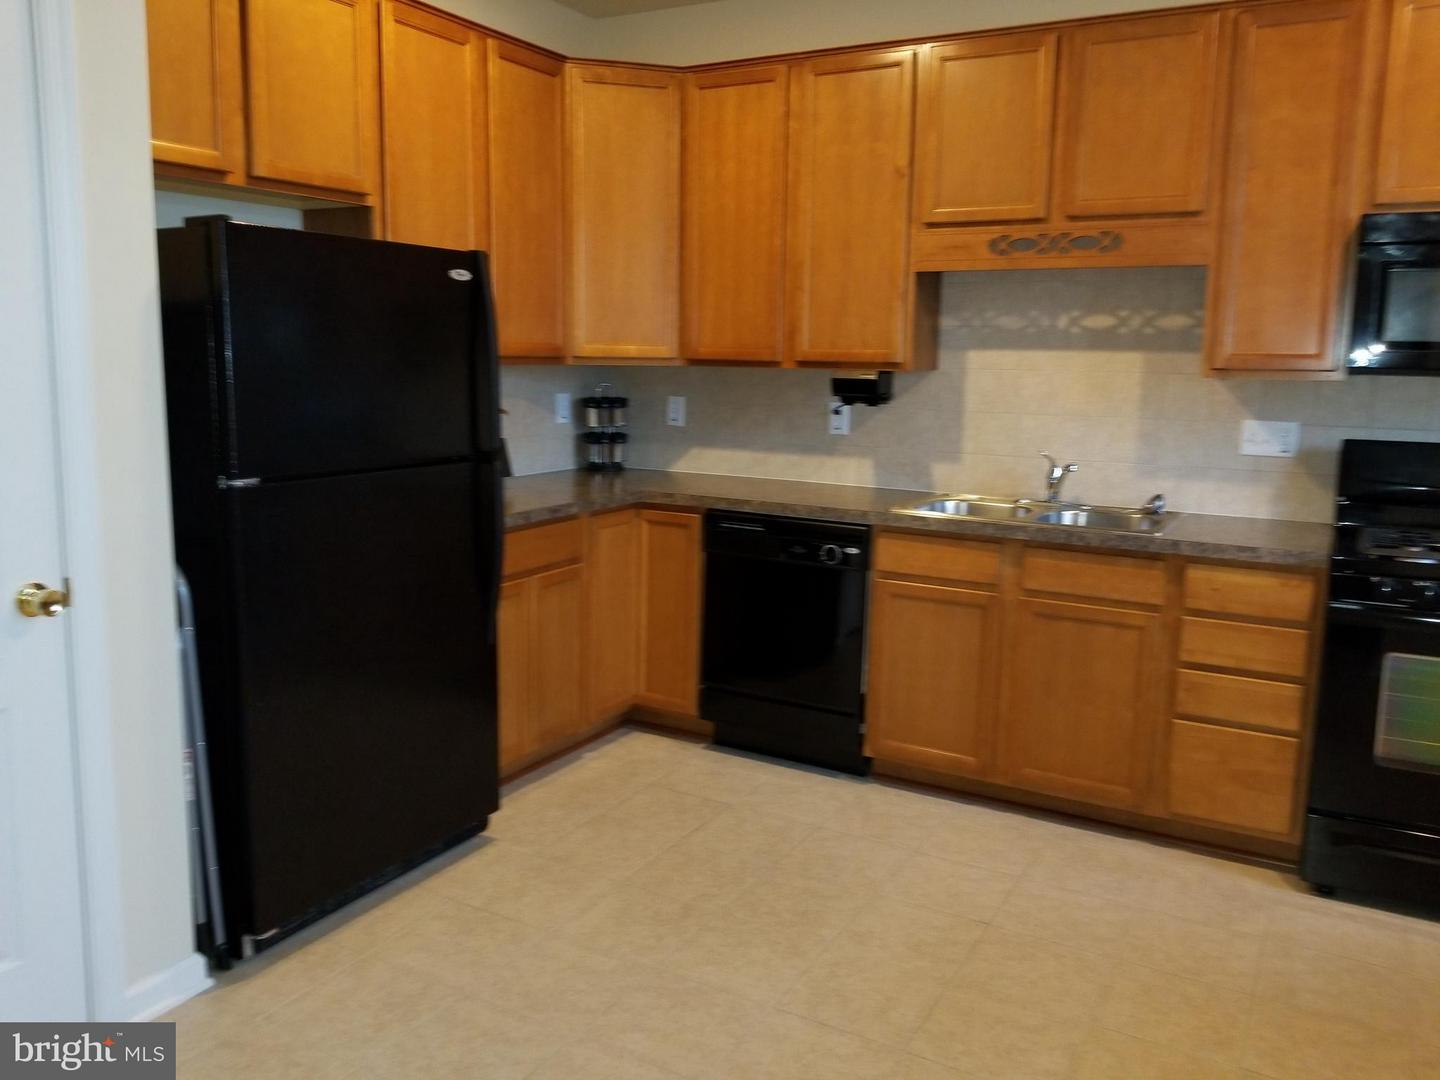 Other Residential for Rent at 308 Prestwick Ln Stephens City, Virginia 22655 United States